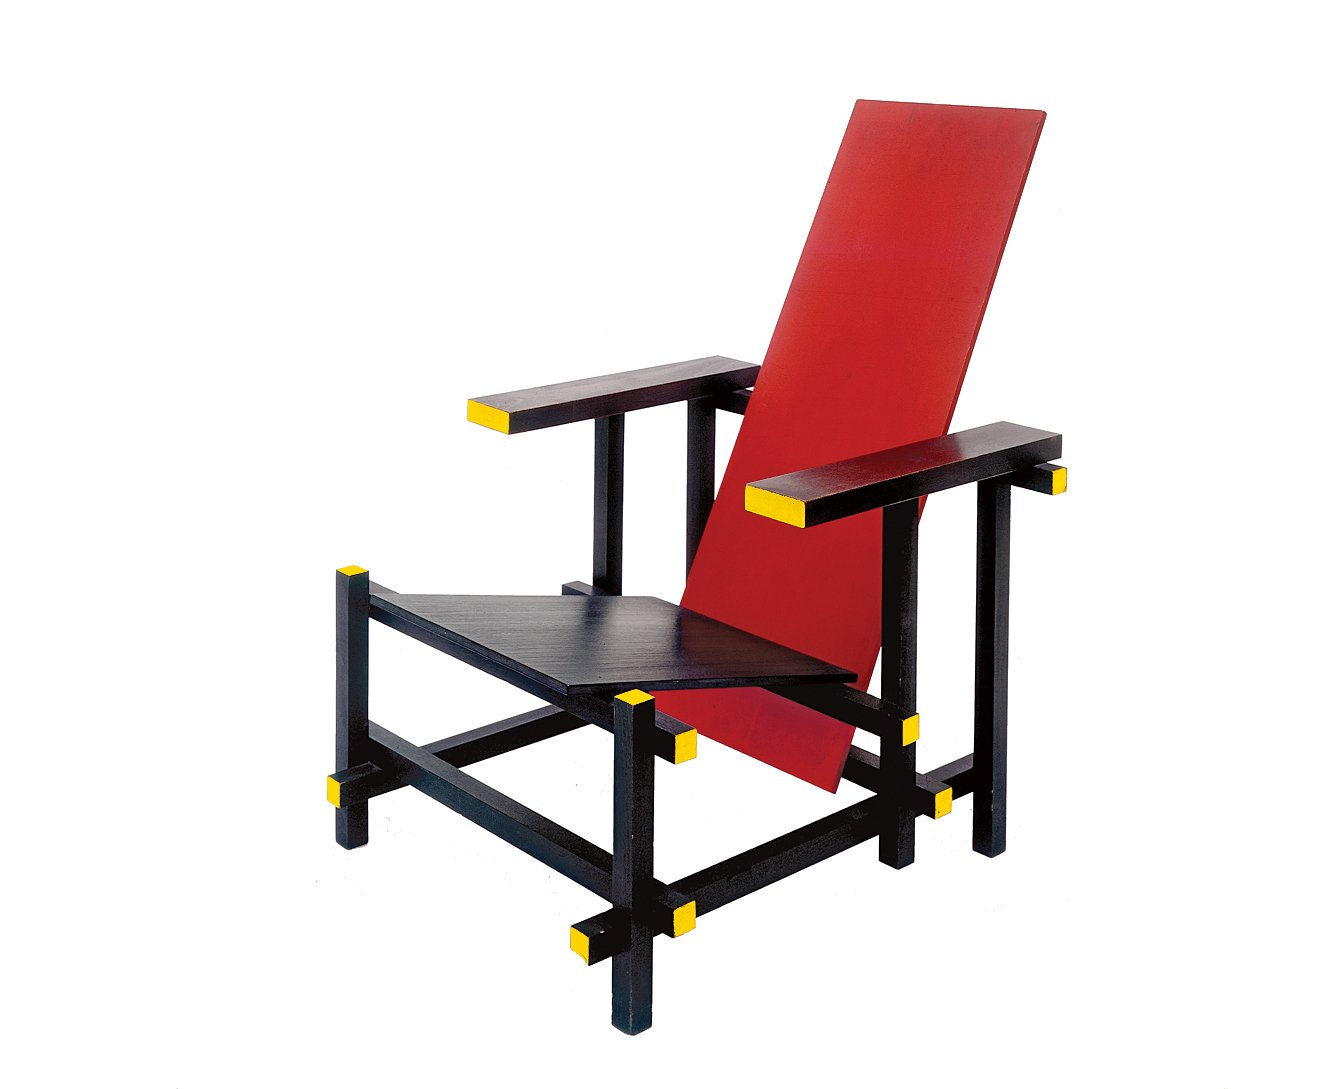 Rietveld's Red and Blue chair, designed in 1917, is a dramatic composition of planes and lines. The colors were inspired by Mondrian, a fellow member of the influential De Stijl movement.  Photo 3 of 8 in Et tu, Bertus?